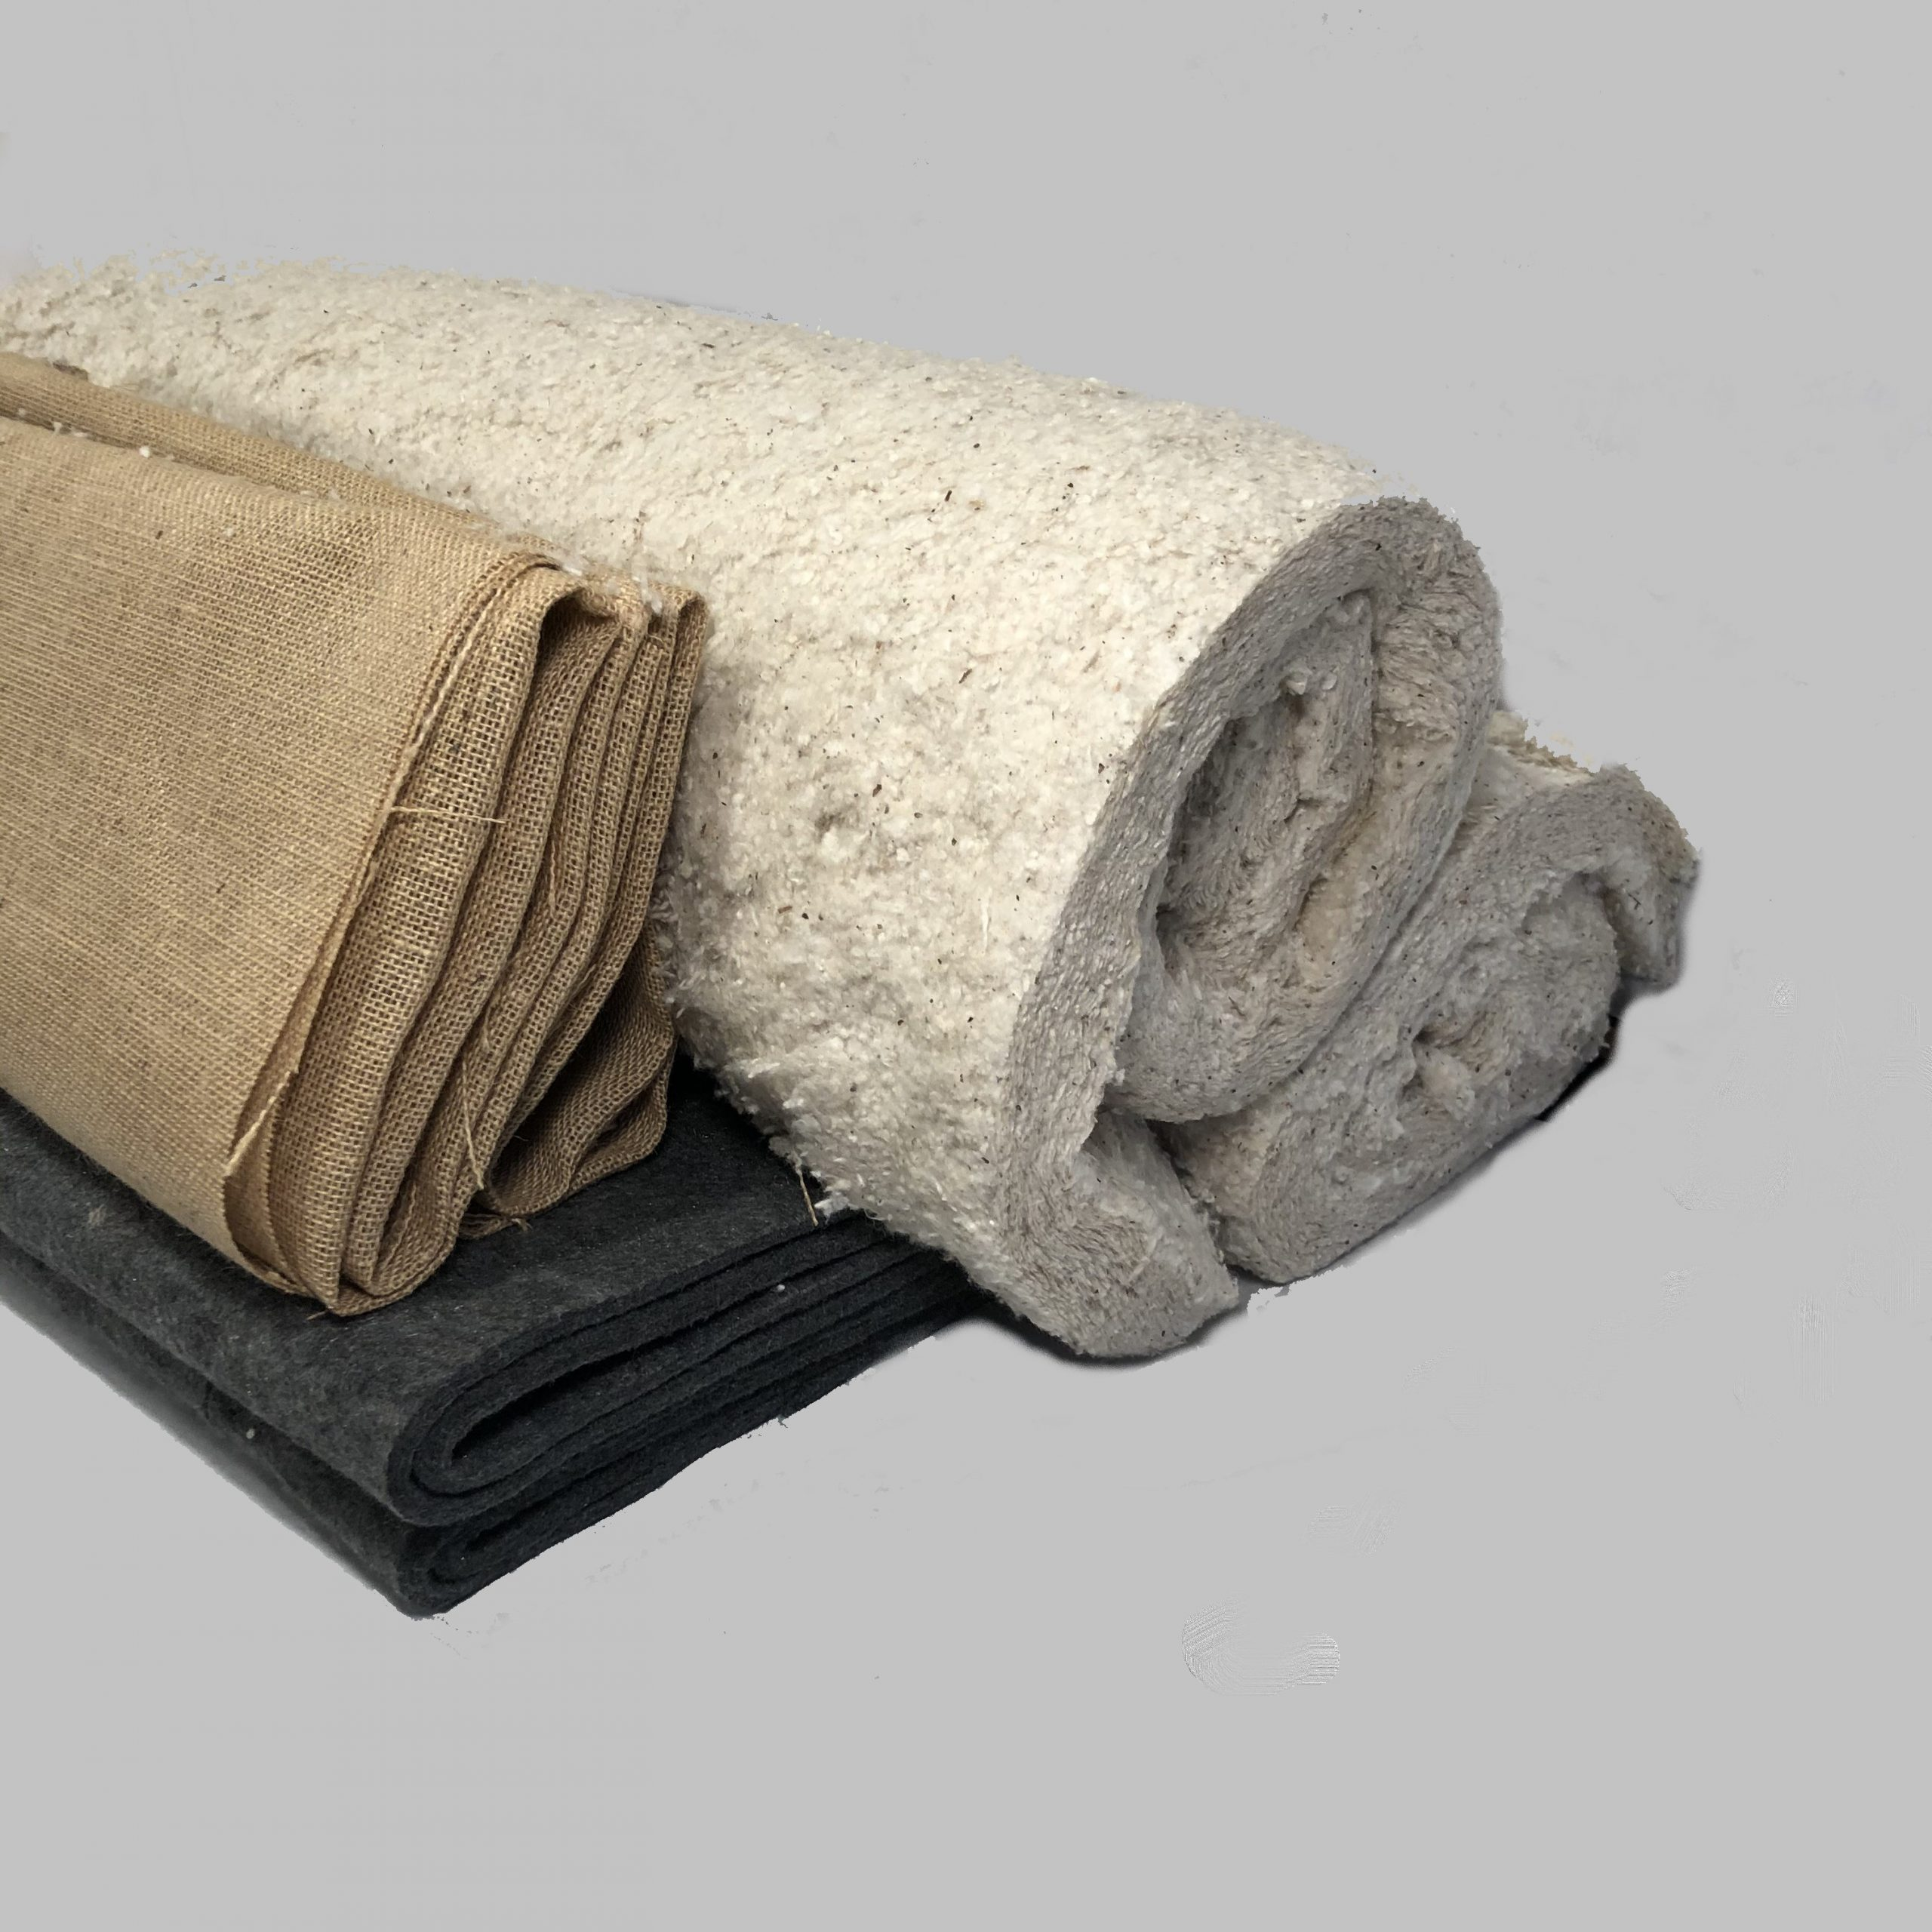 36-38 Seat Underlayment – Back And Base Complete